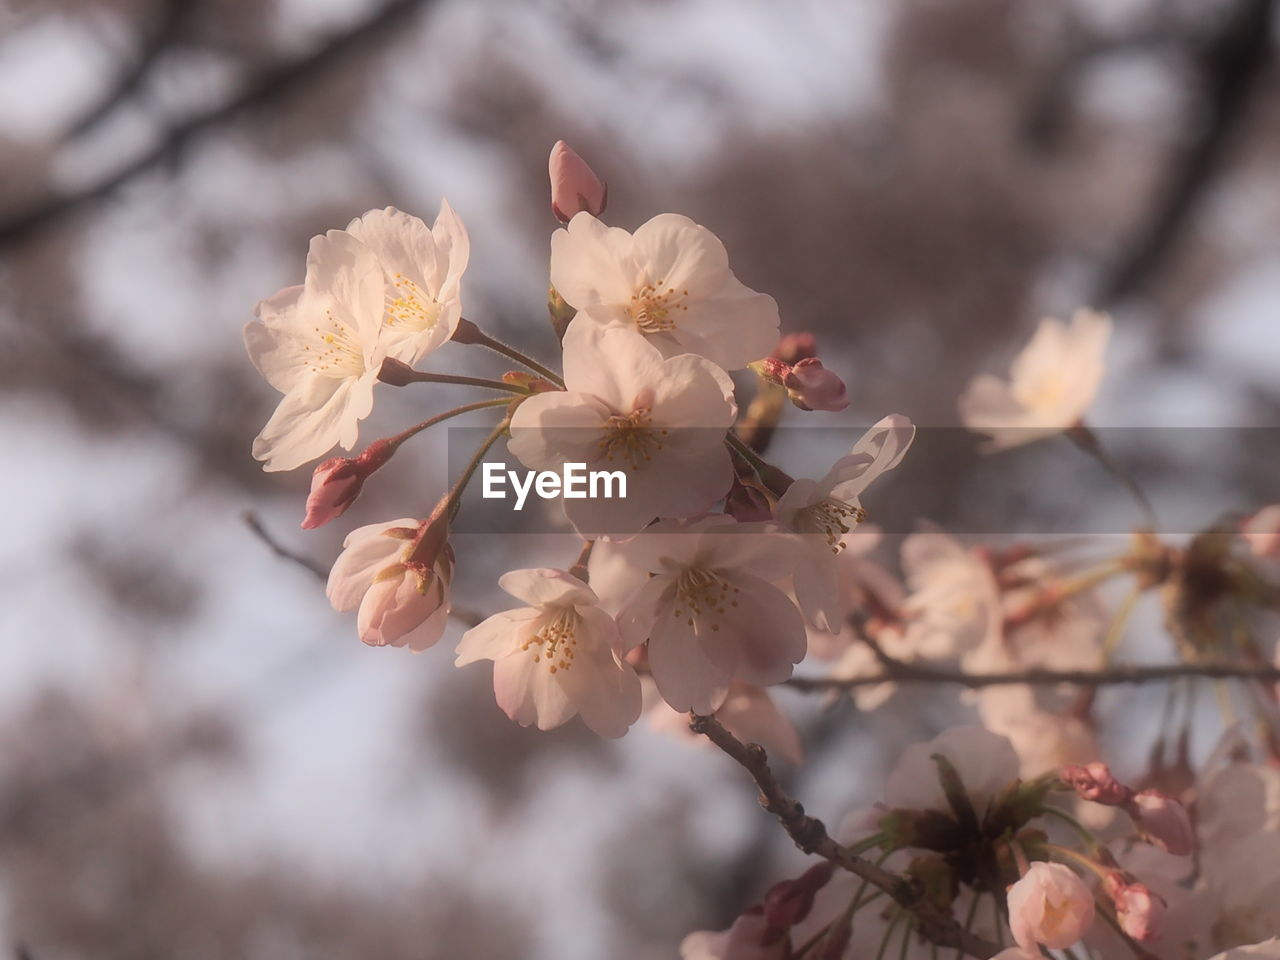 flower, beauty in nature, nature, blossom, tree, fragility, growth, apple blossom, springtime, no people, branch, focus on foreground, day, outdoors, freshness, close-up, flower head